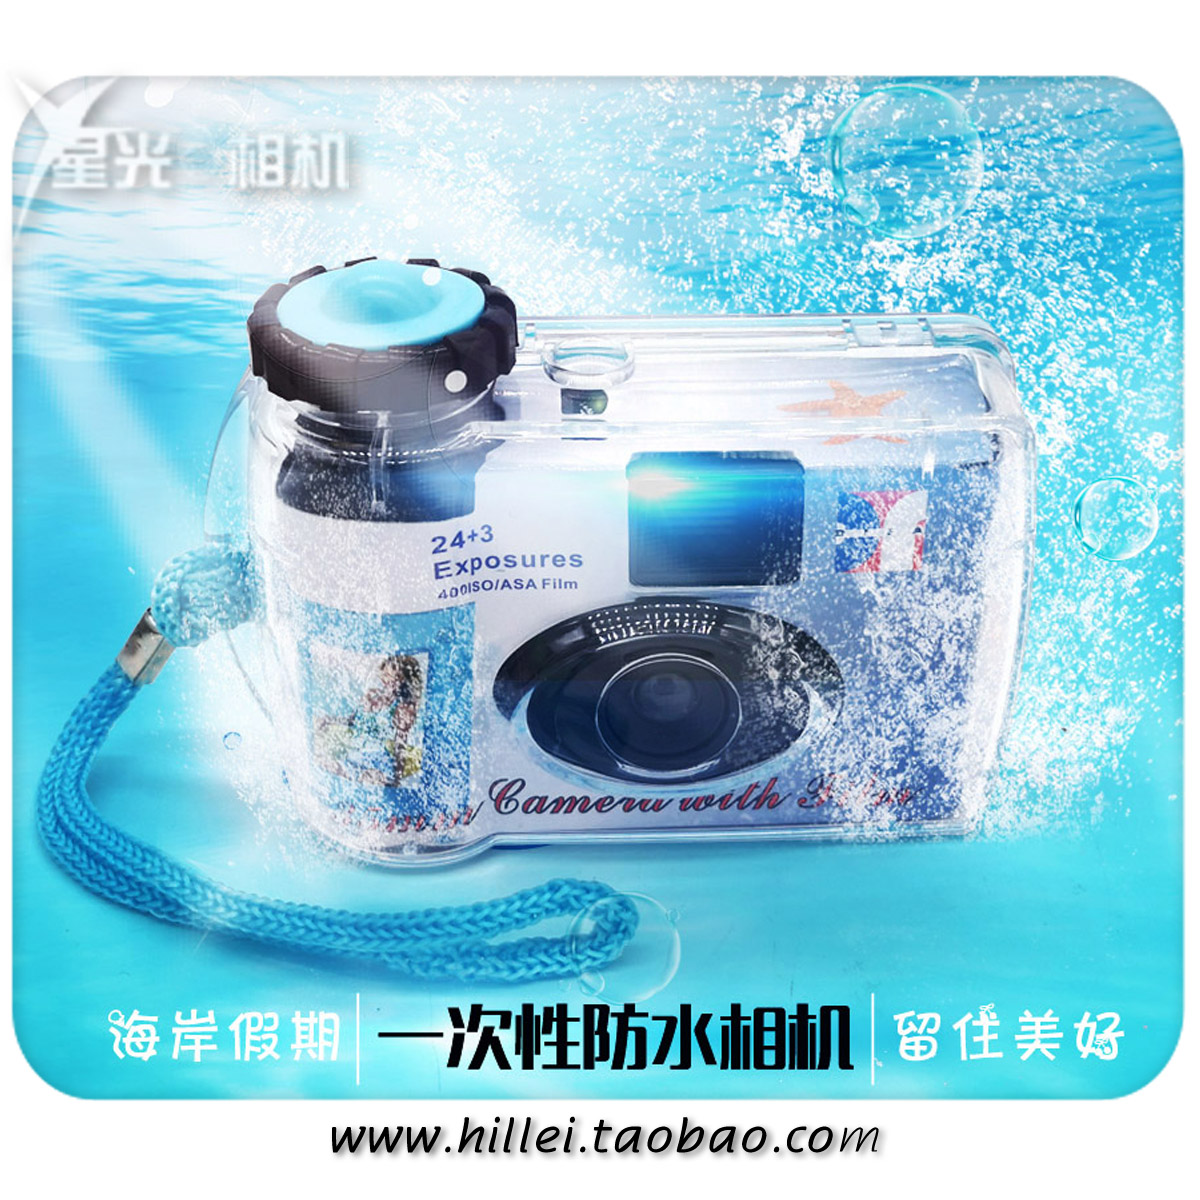 Disposable waterproof camera with film film film fool camera 135 Beach Beach 24 simple portable gift